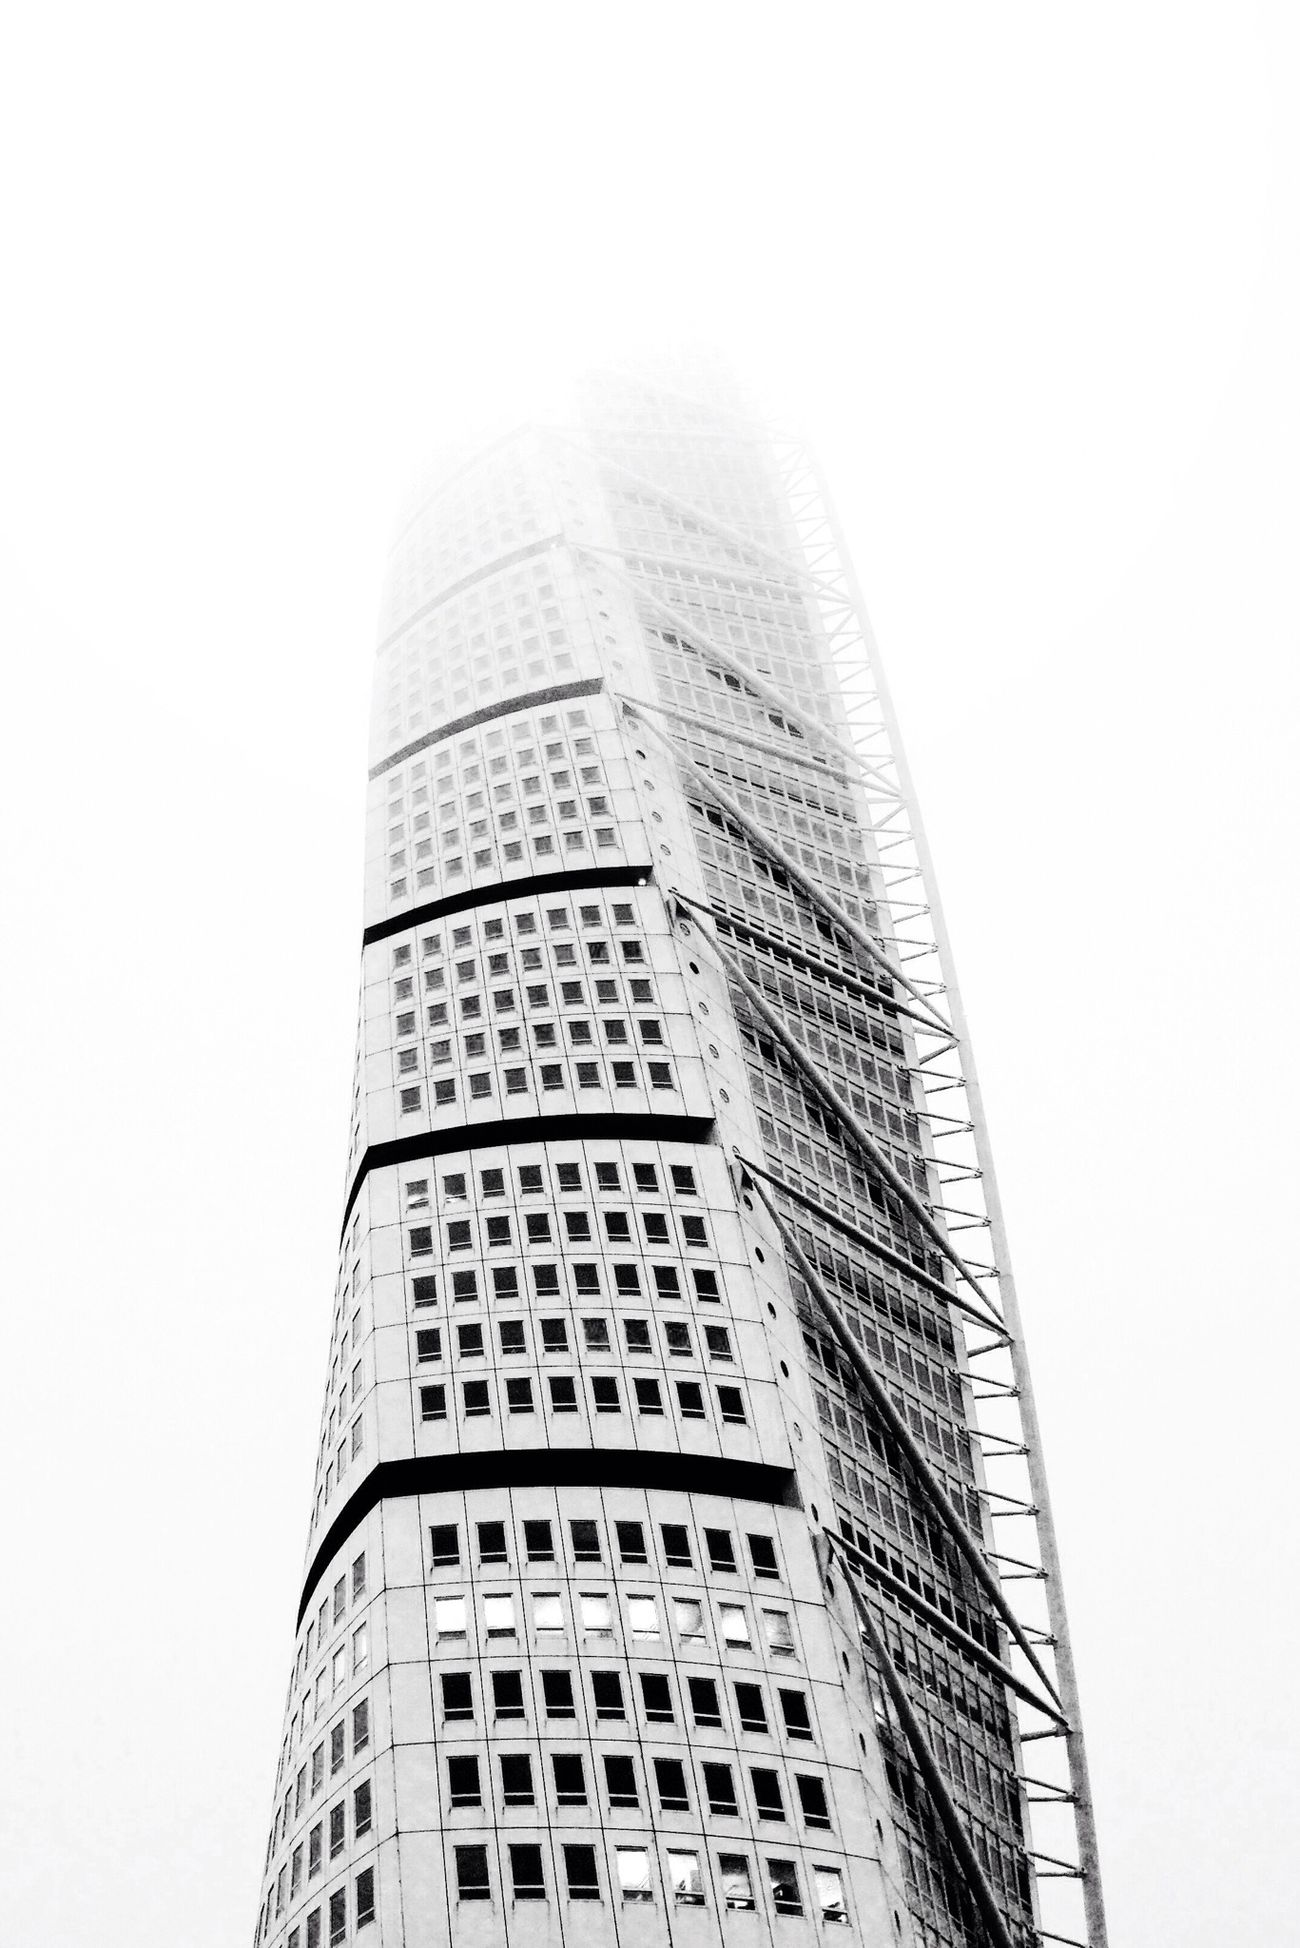 Into the fog EyeEm Best Shots - Architecture NEM Architecture Archilovers Monochrome Eye4black&white  AMPt_community Shootermag Lookingup Fog Love Structures